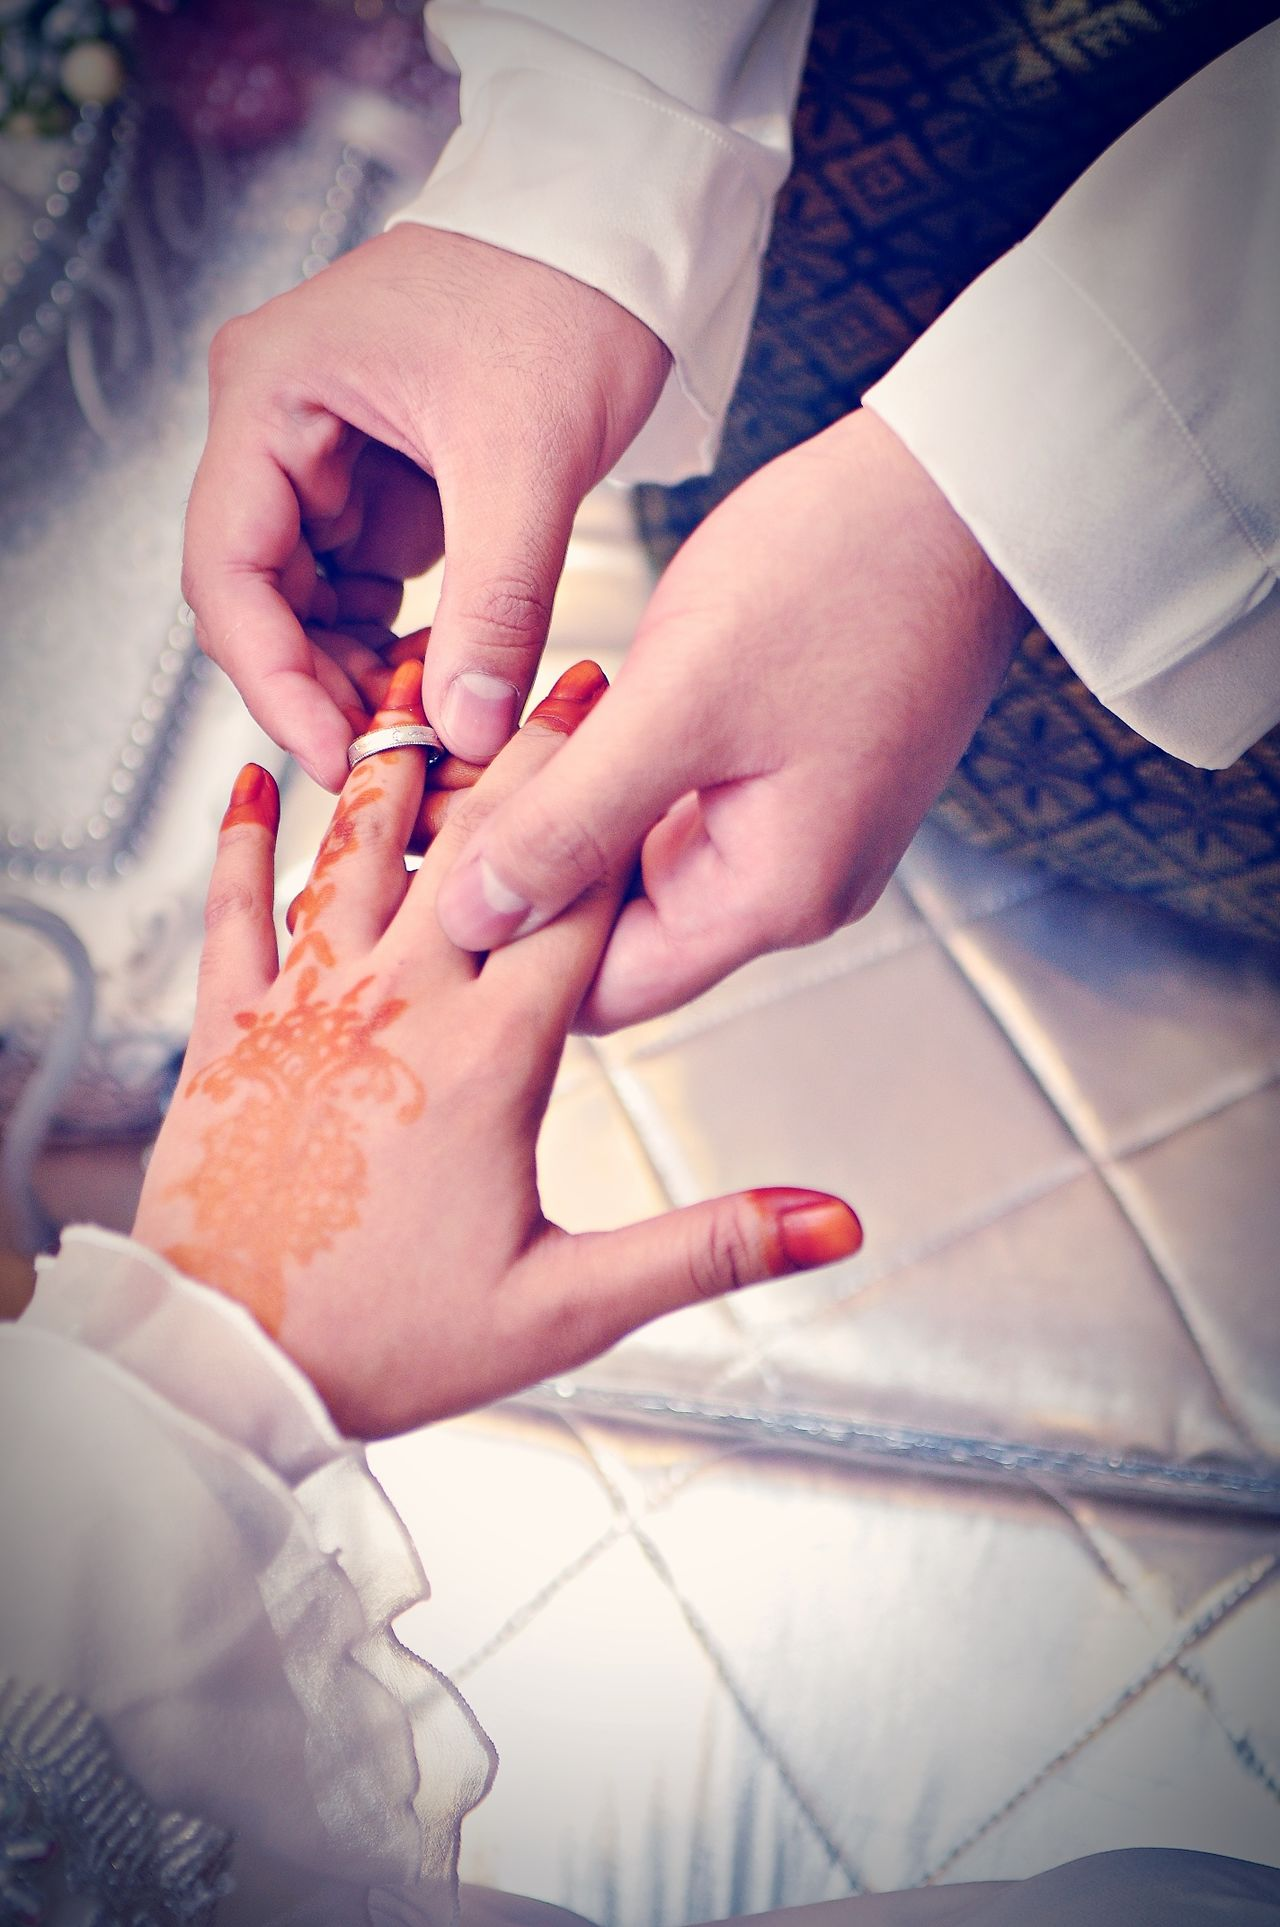 The Moment - 2015 EyeEm Awards The Photojournalist - 2015 EyeEm Awards Wedding Photography Wedding Day Wedding Ring